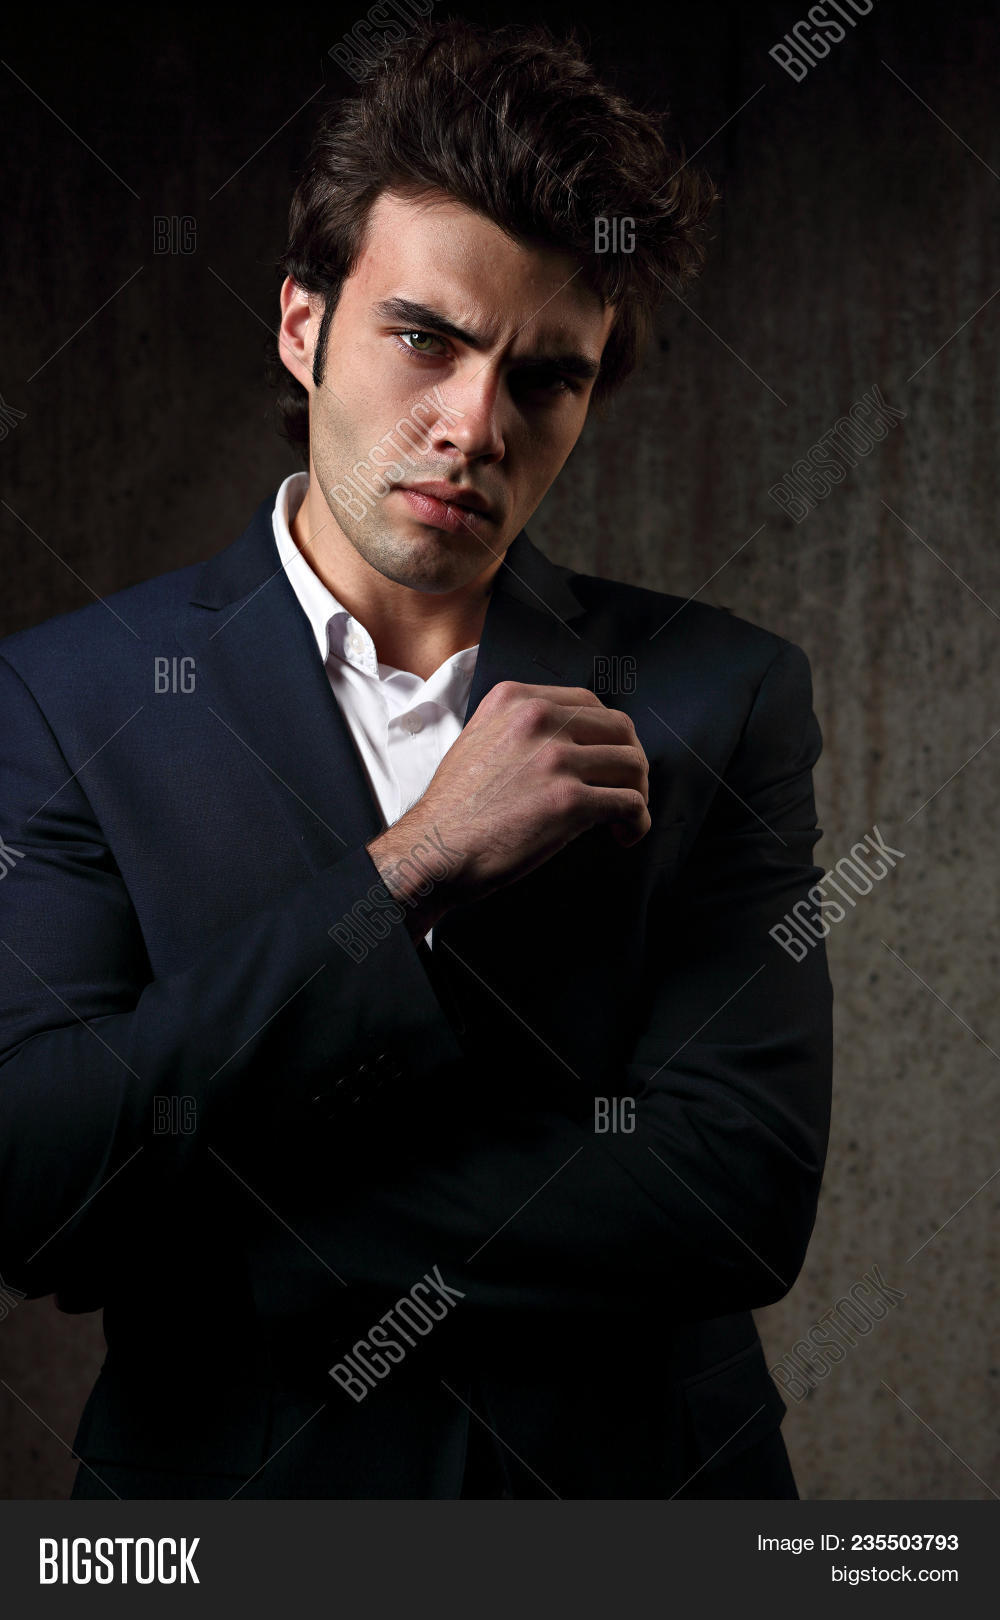 2b136930 Sexy Serious Handsome Male Model Posing In Blue Fashion Suit And White  Style Shirt On Dark